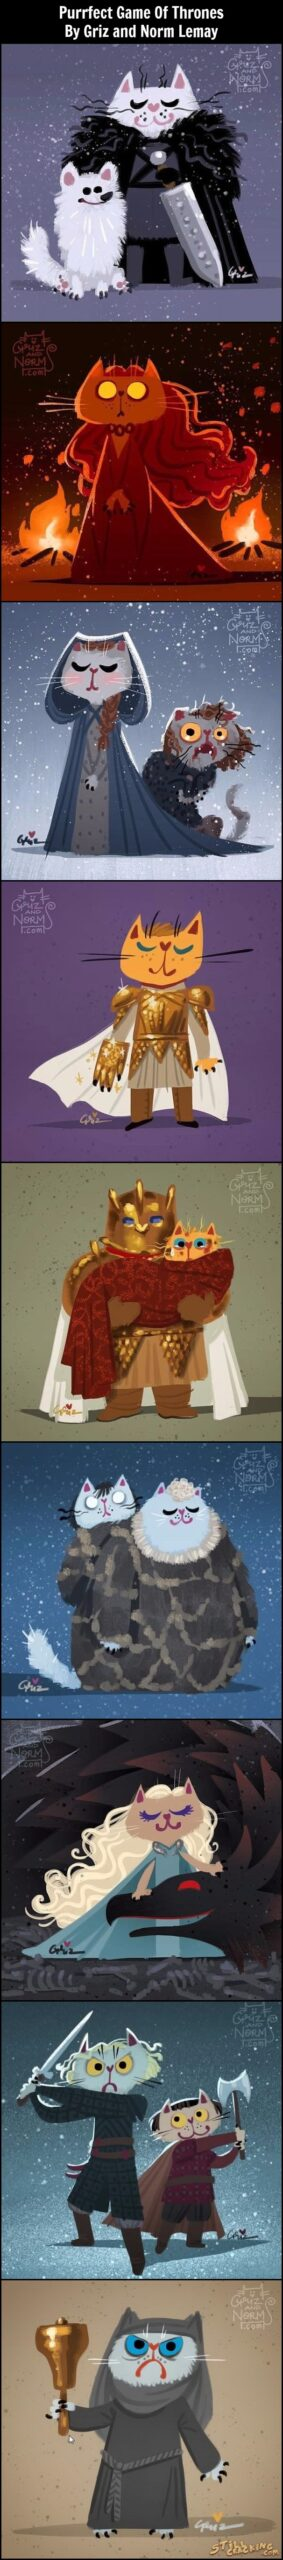 Purrfect Game Of Thrones By Griz and Norm Lemay, got, game of thrones art